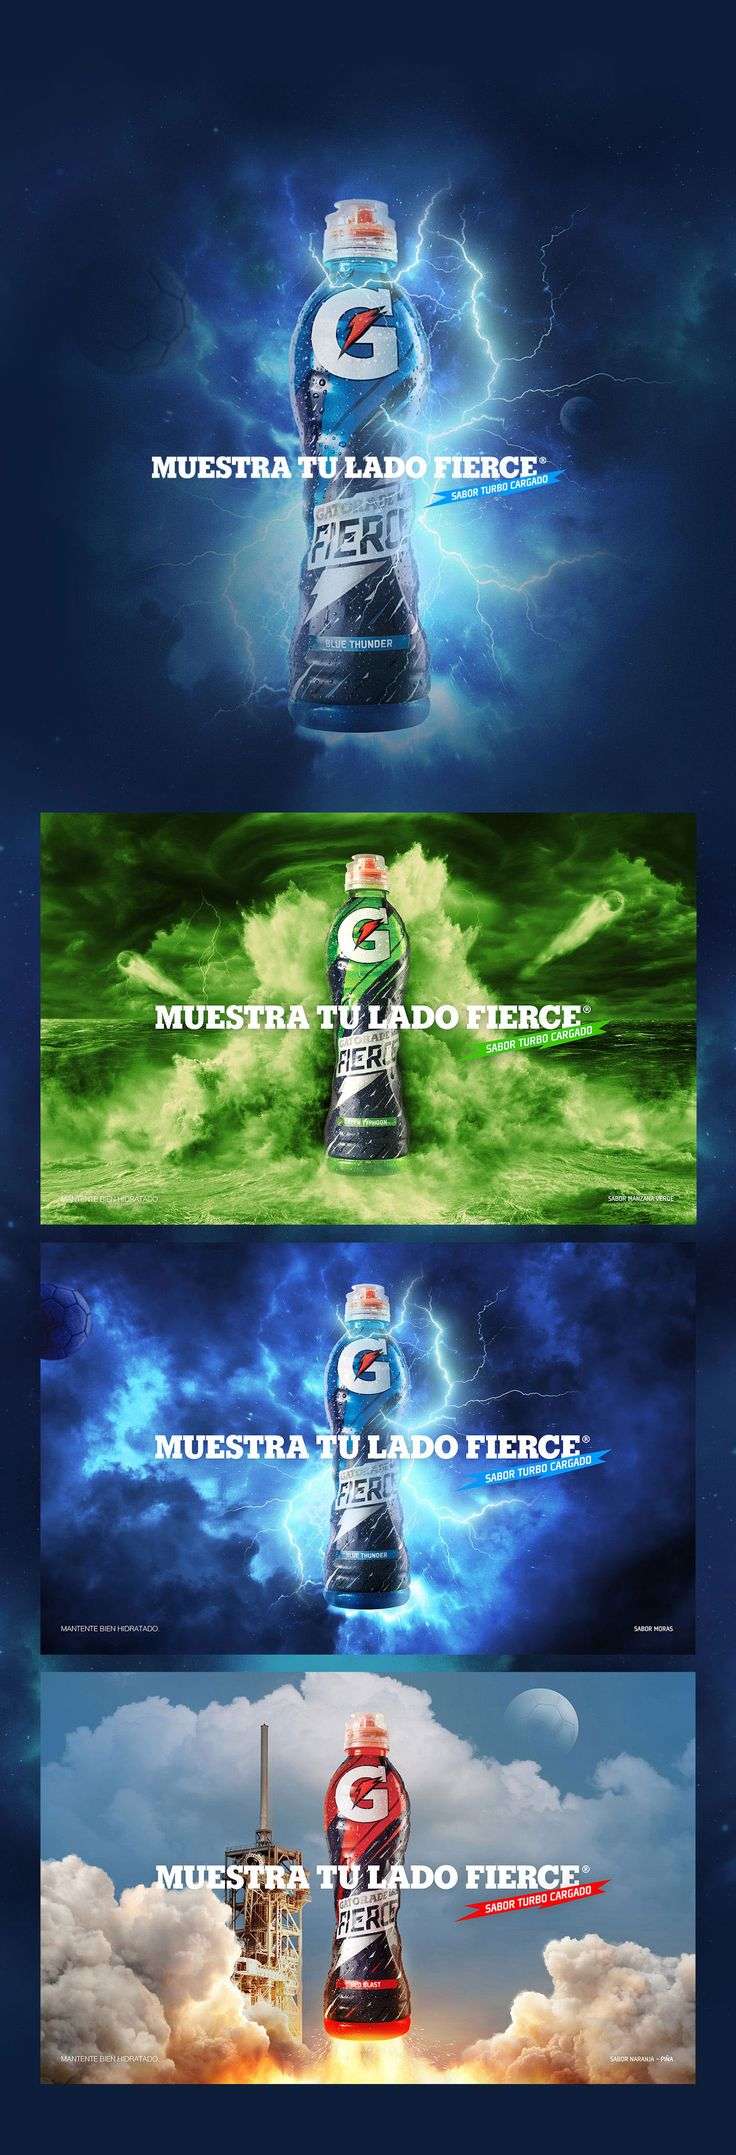 GATORADE - MUESTRA TU LADO FIERCE on Behance